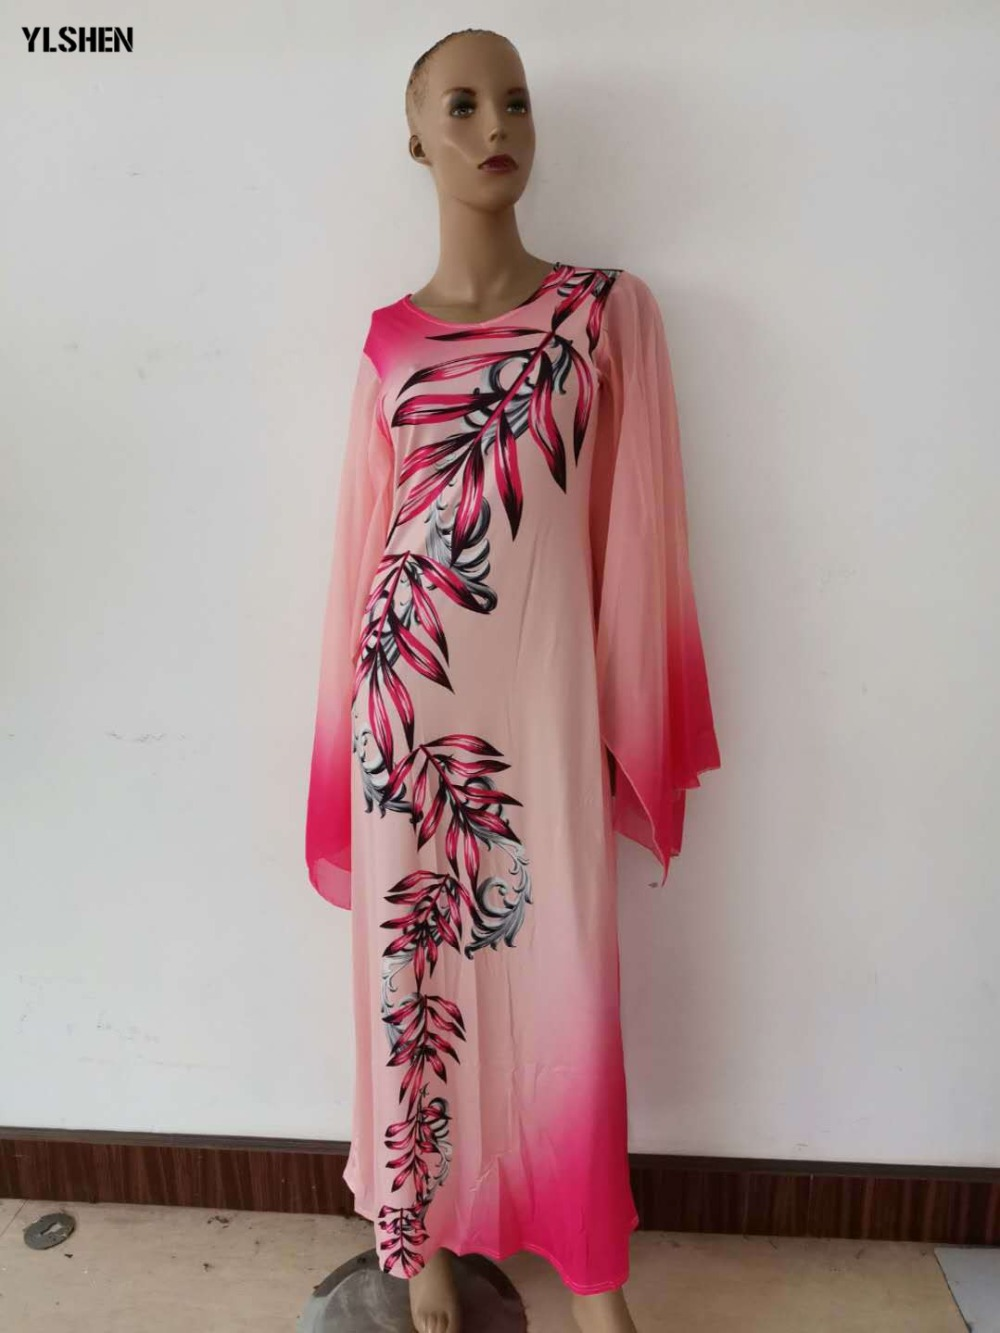 New African Dresses for Women Dashiki Print African Clothes Bazin Riche Sexy Slim Ruffle Sleeve Long Africa Maxi Dress Woman 05